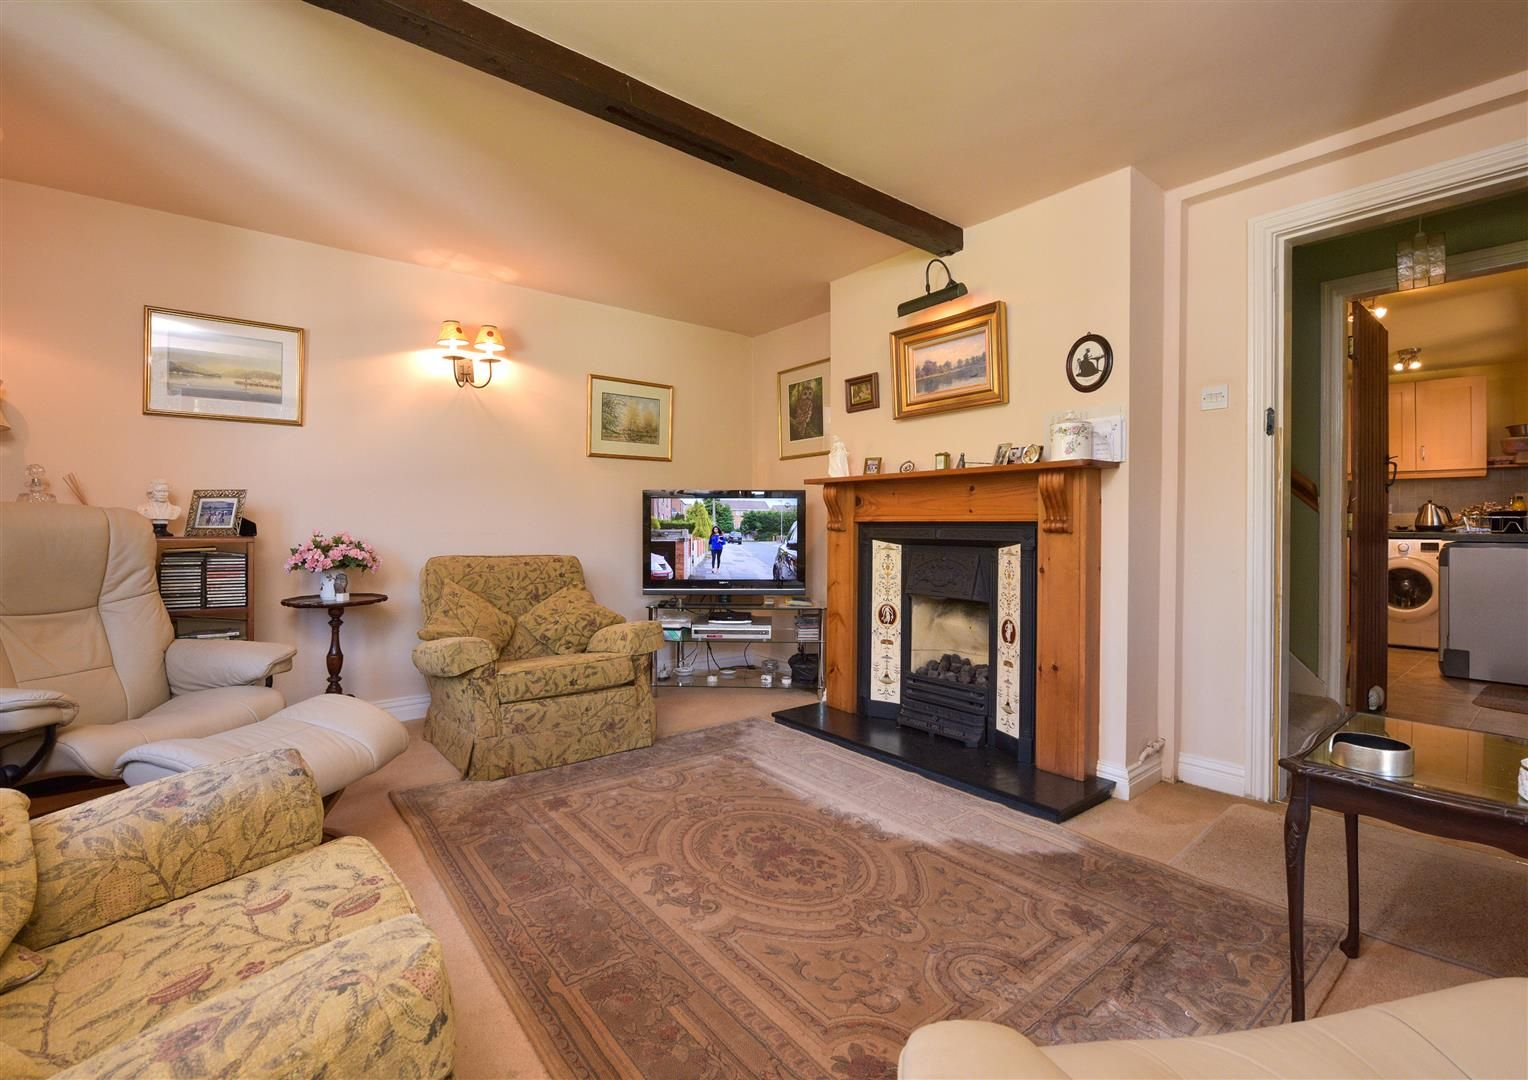 2 bed semi-detached for sale in Clent  - Property Image 4